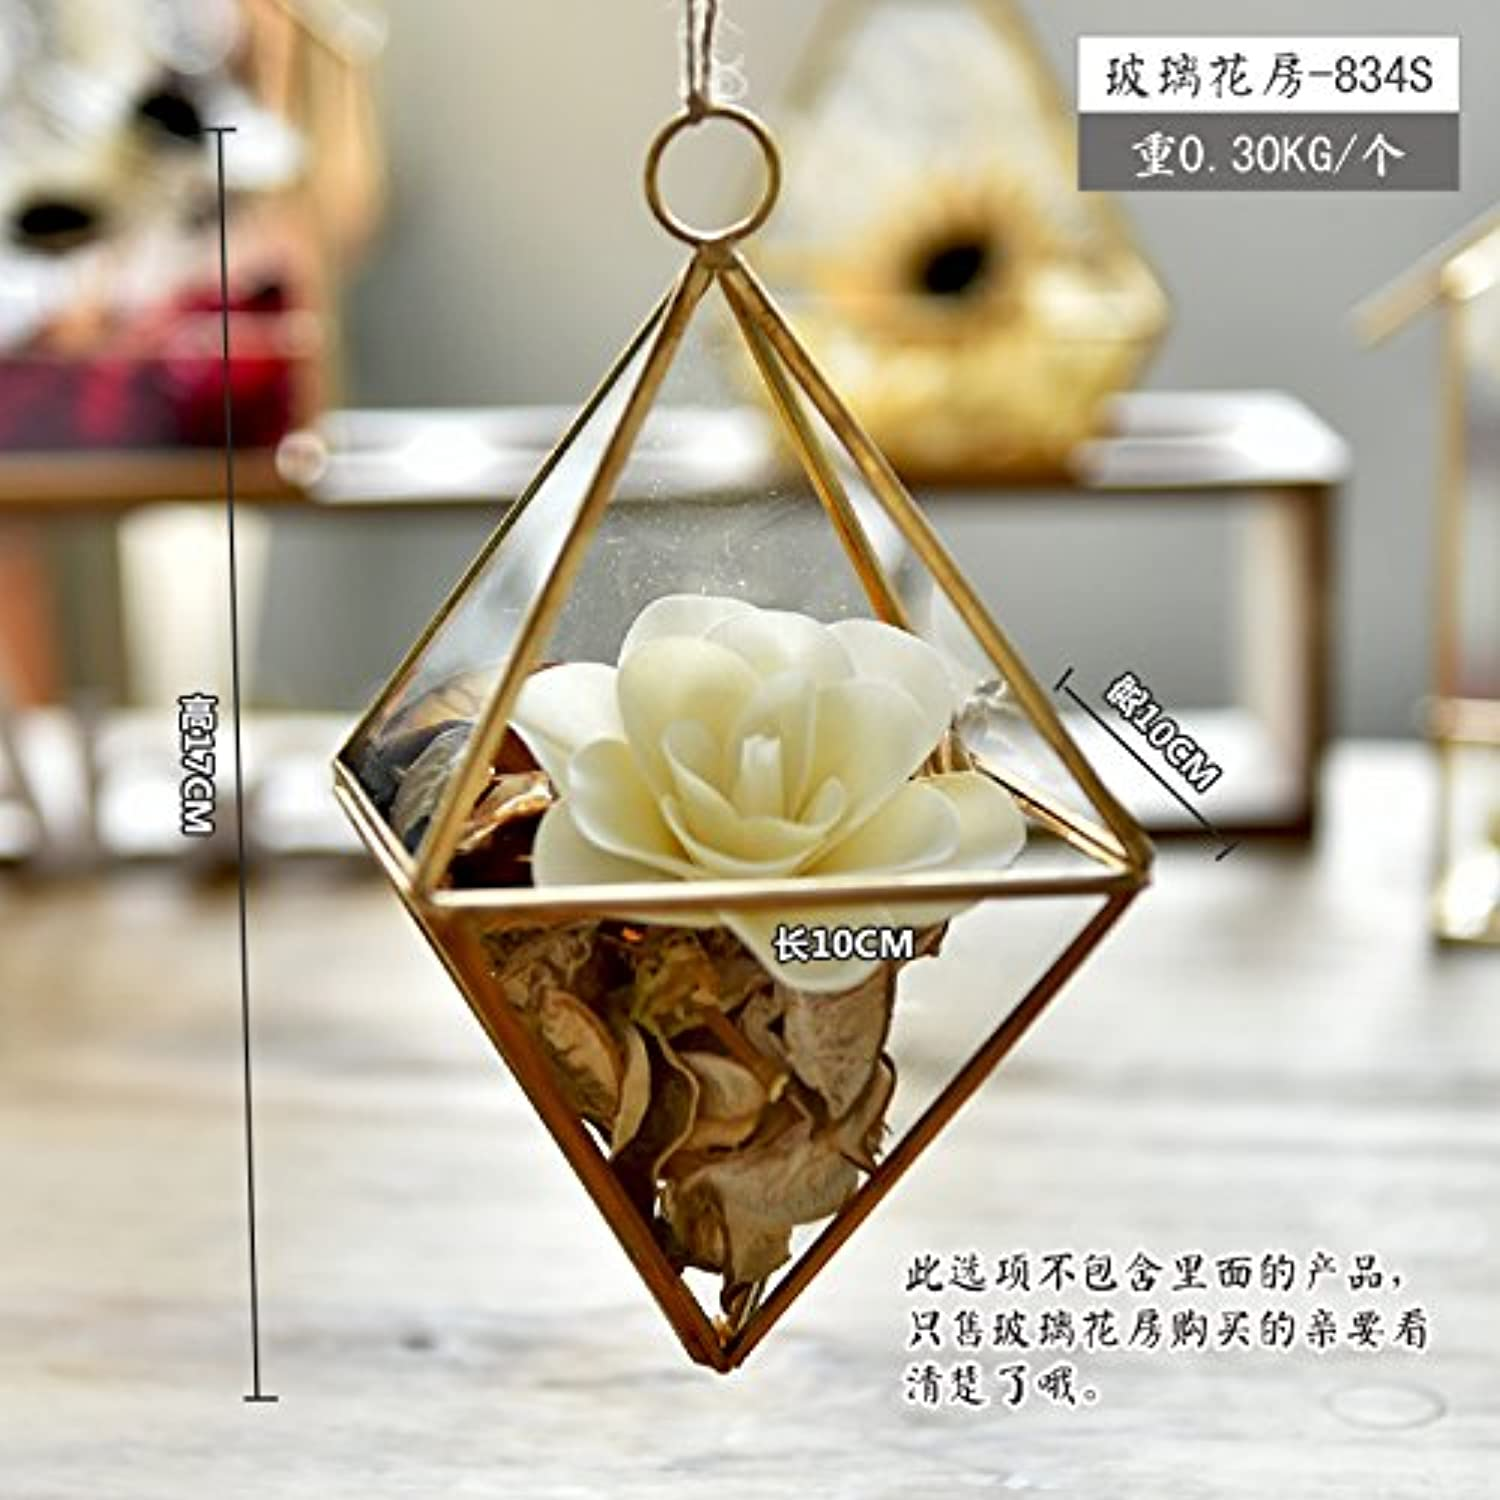 MENG The Eternal Flower Glass Greenhouse Decoration Micro Landscape Creative Jewelry Gift Gift Home Furnishing Fleshy Girl P